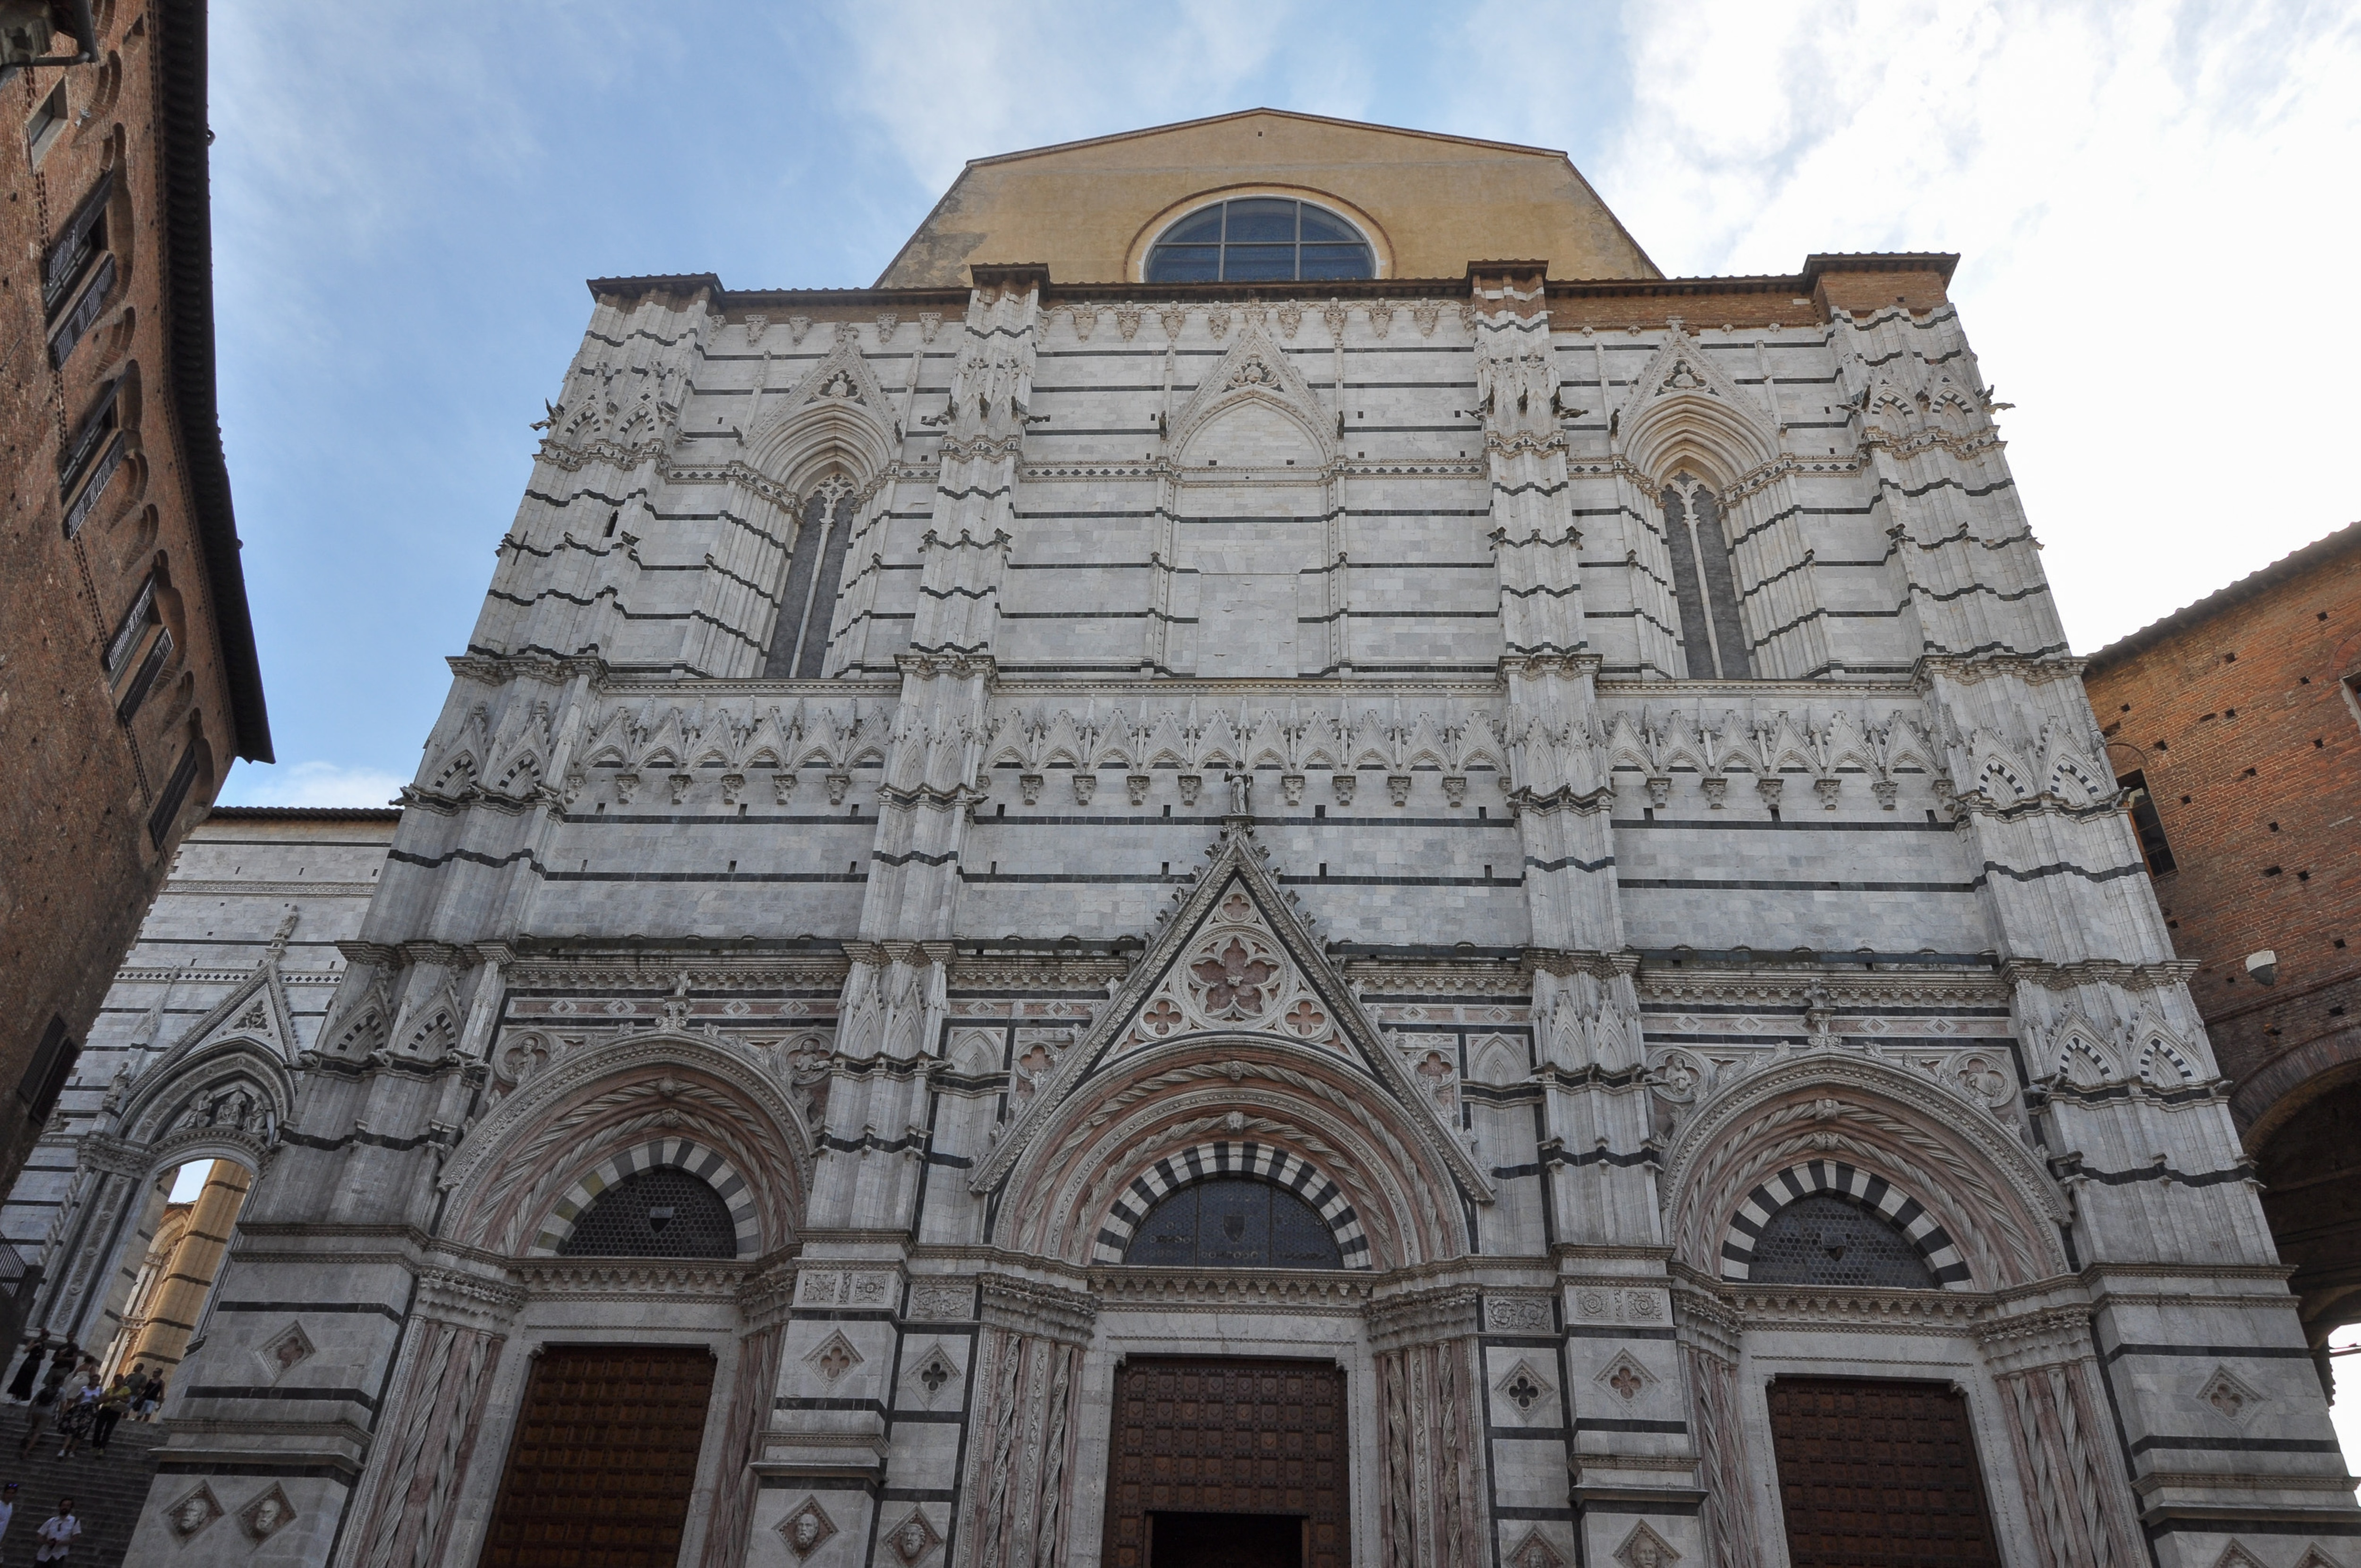 Battistero - One of the Top Attractions in Pisa, Italy ...